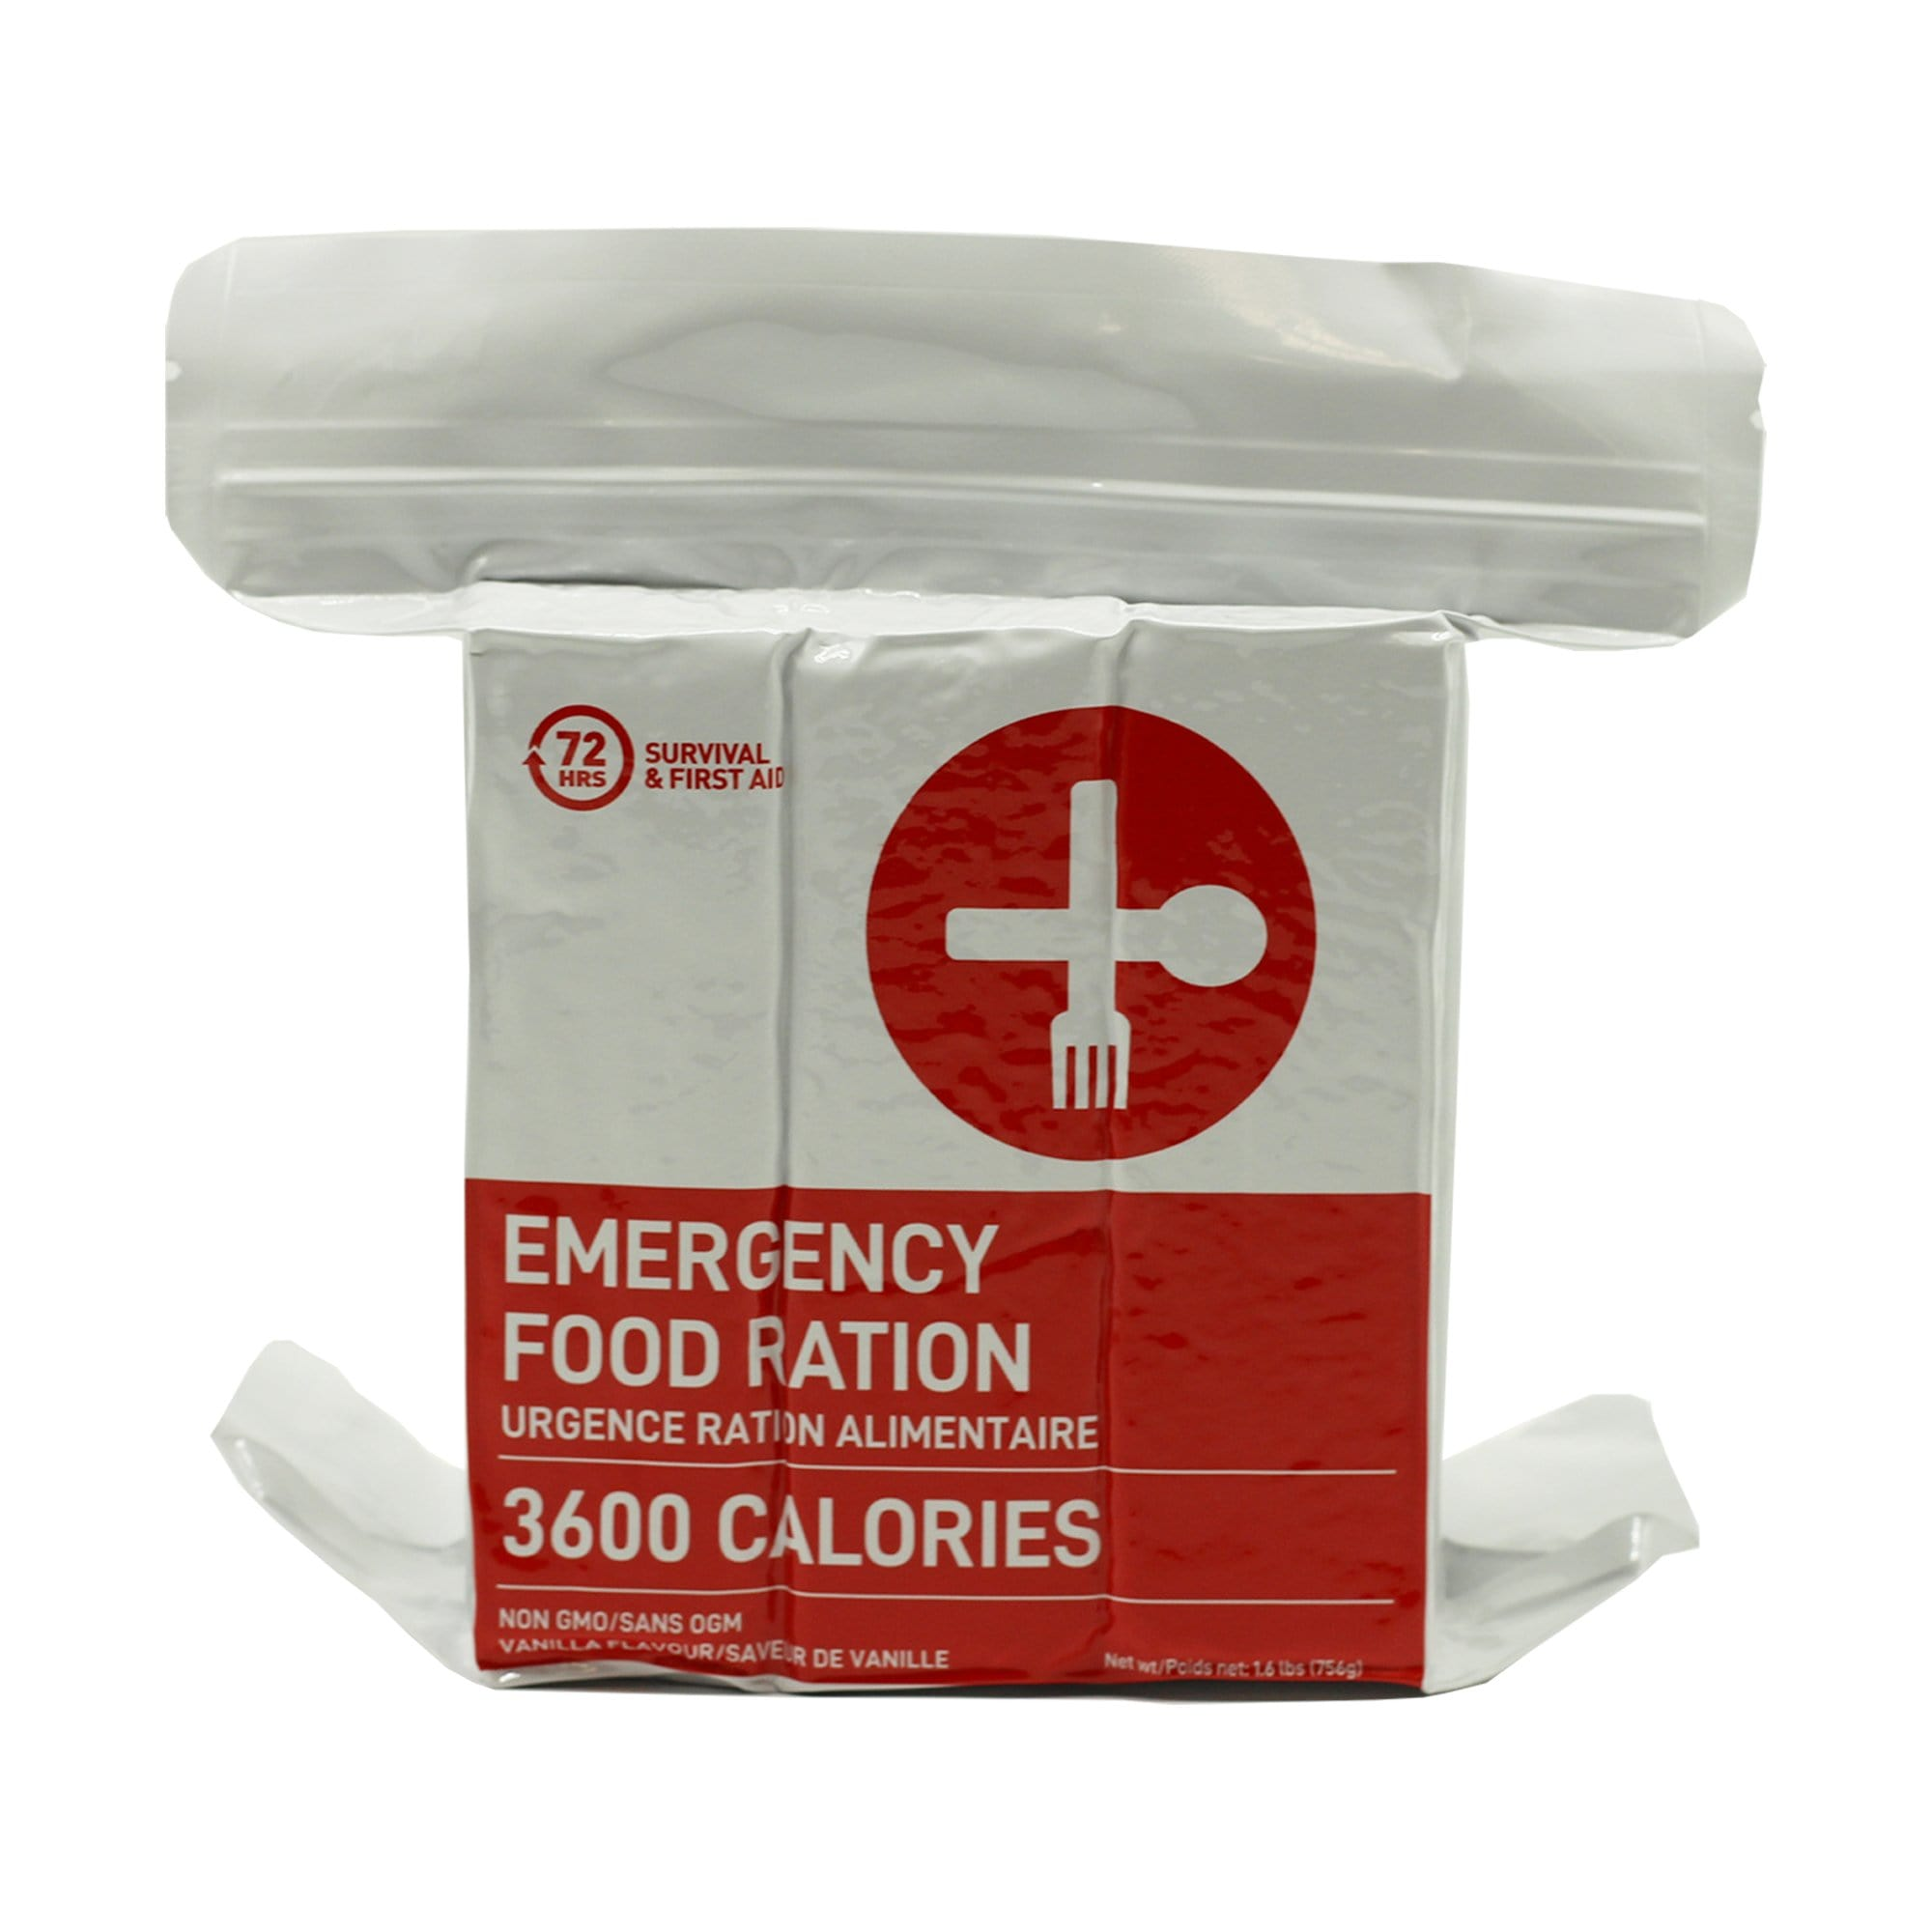 3600 Calorie 72HOURS Emergency Food Ration (NON-GMO)